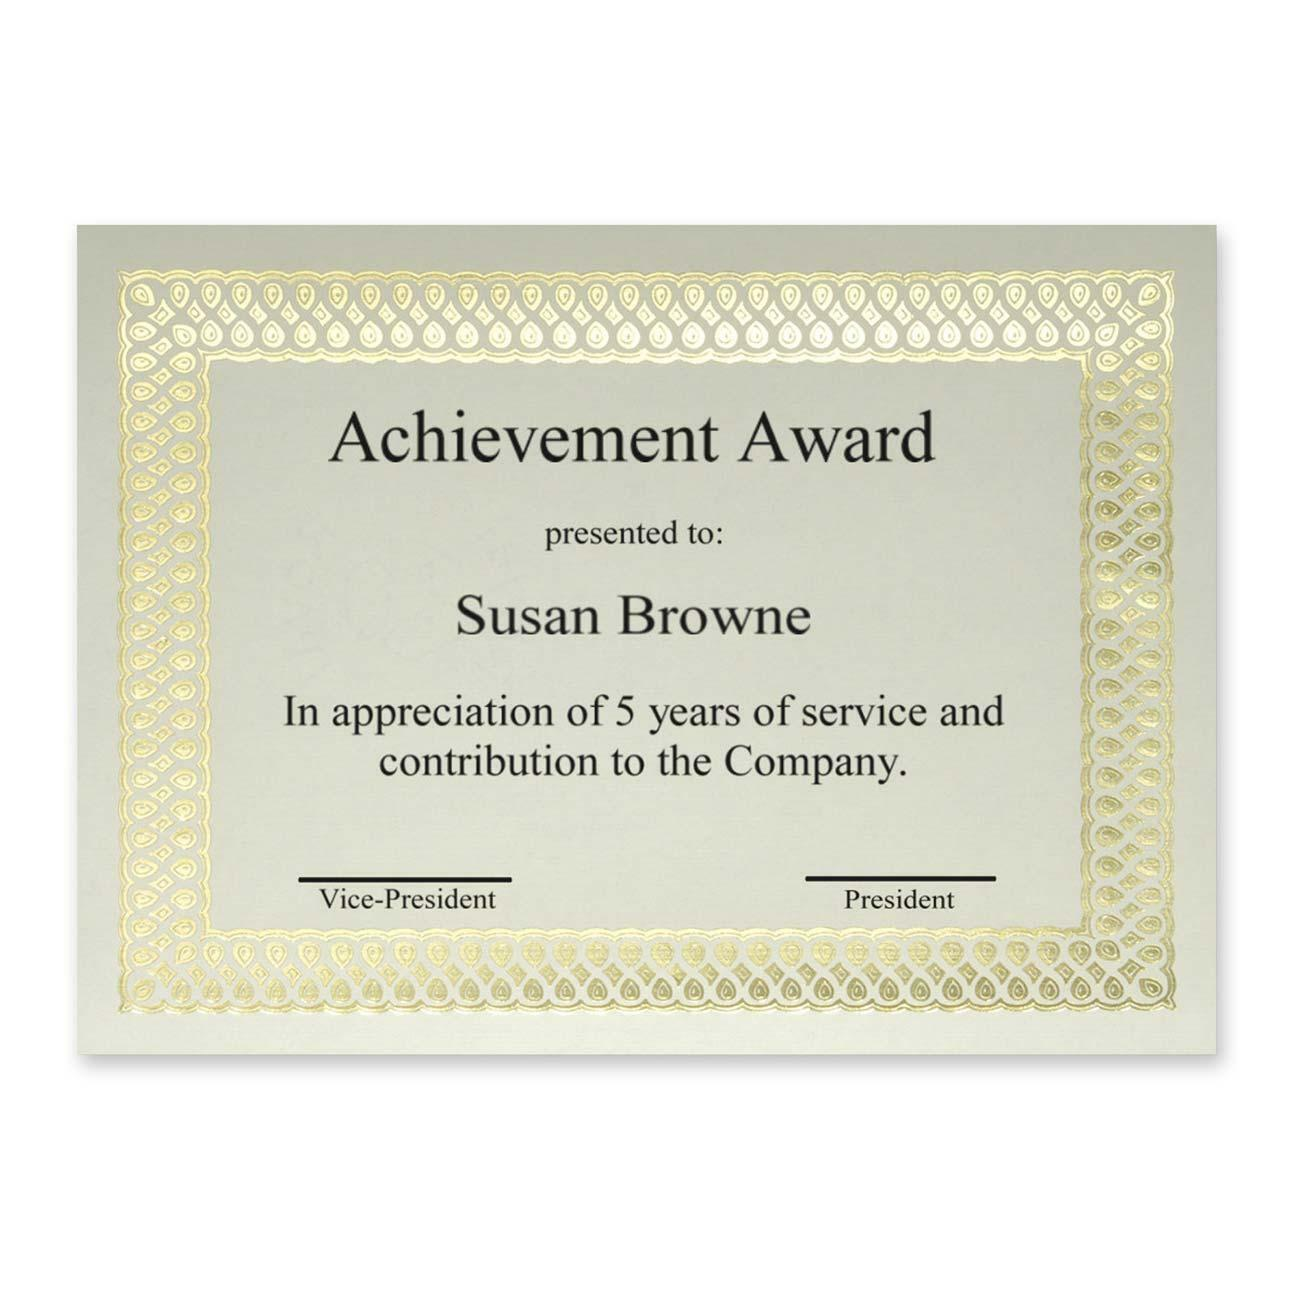 Kamloops office systems office supplies school supplies art create unique memorable awards easily with these blank certificates that feature classic gold foil borders on 24 lb ivory linen stock yadclub Image collections